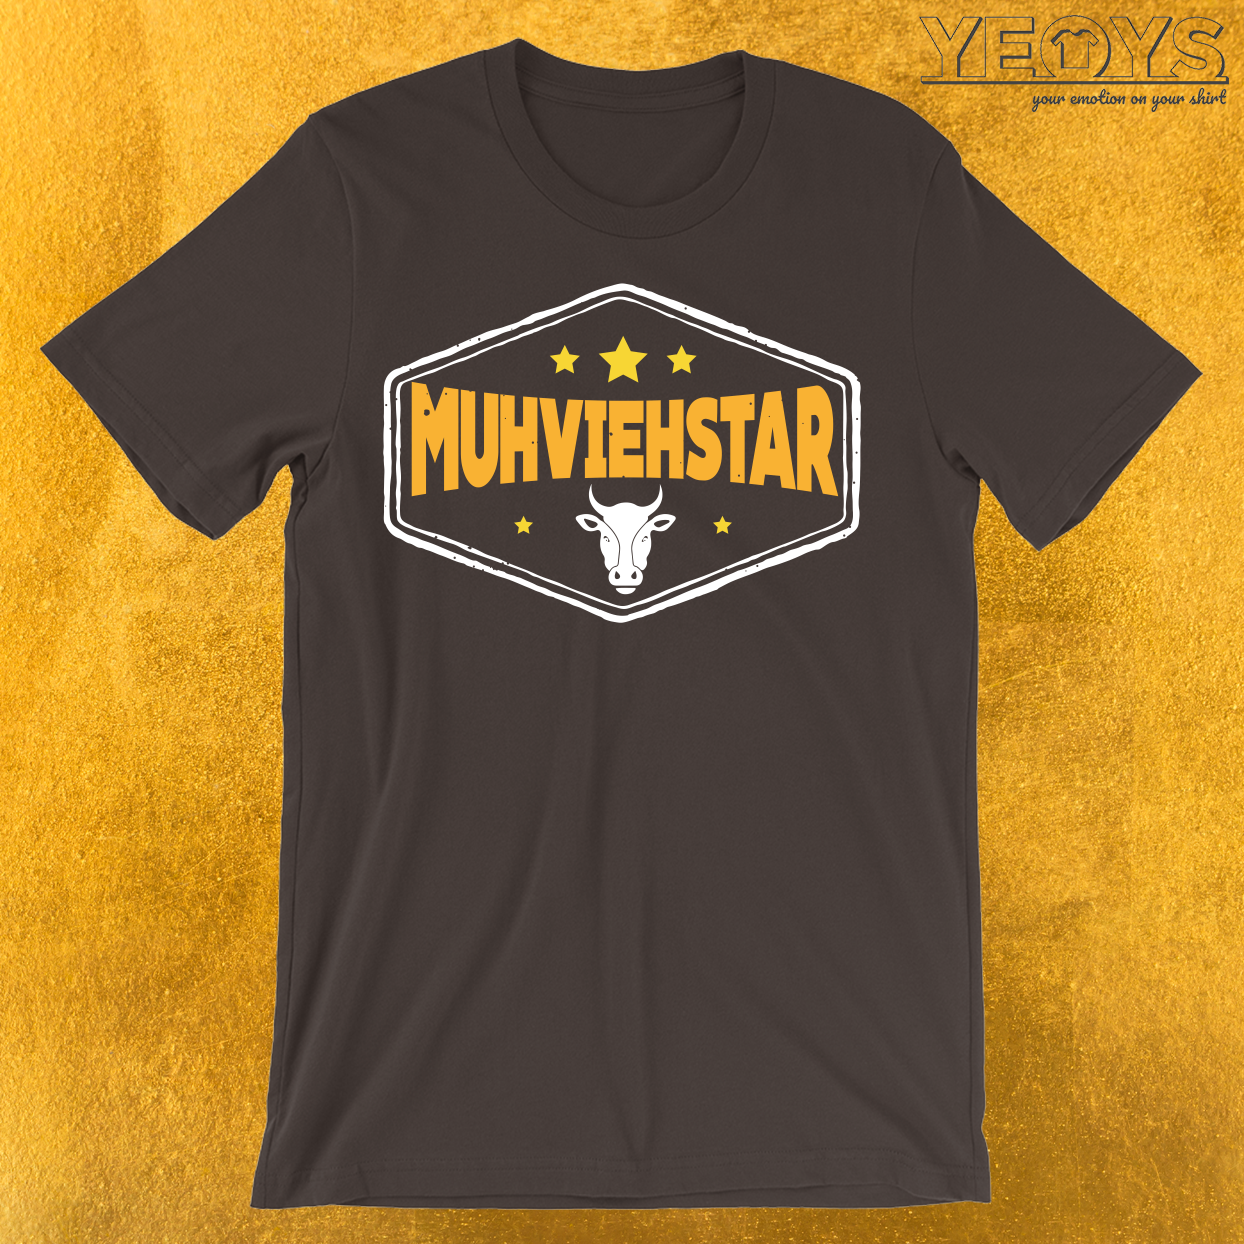 Muhviehstar Lustiges Wortspiel T-Shirt